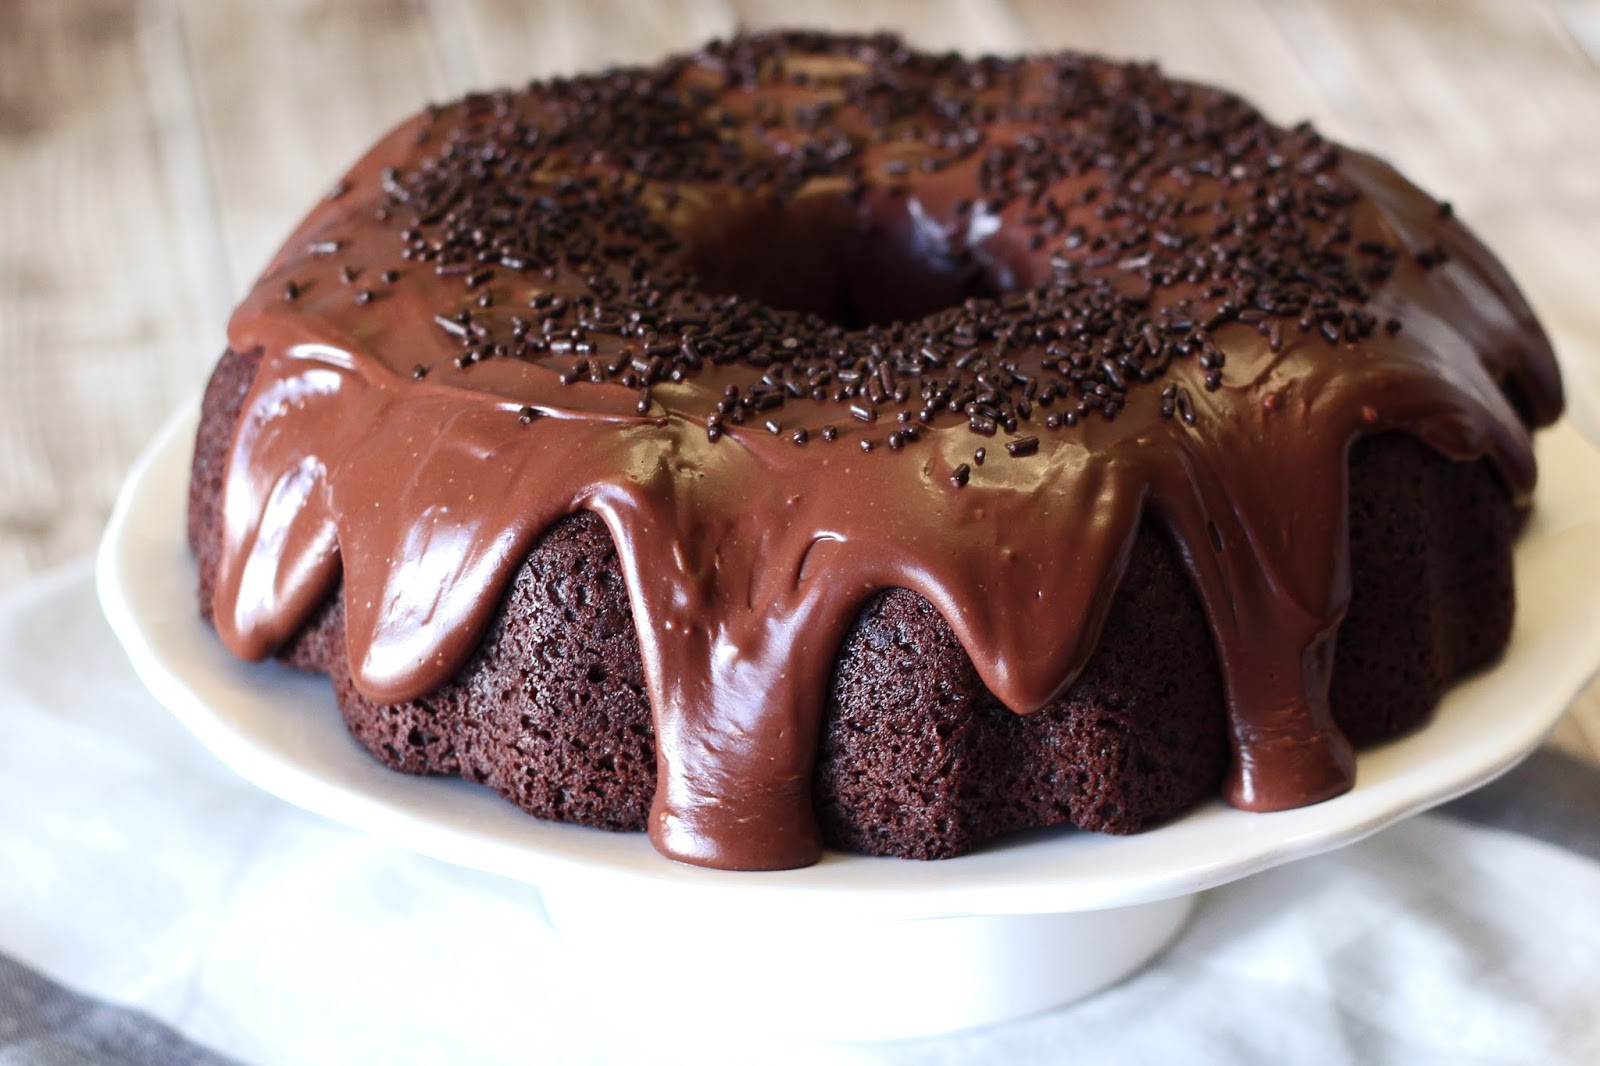 gluten free vegan double chocolate bundt cake | Sarah, Baking Gluten ...